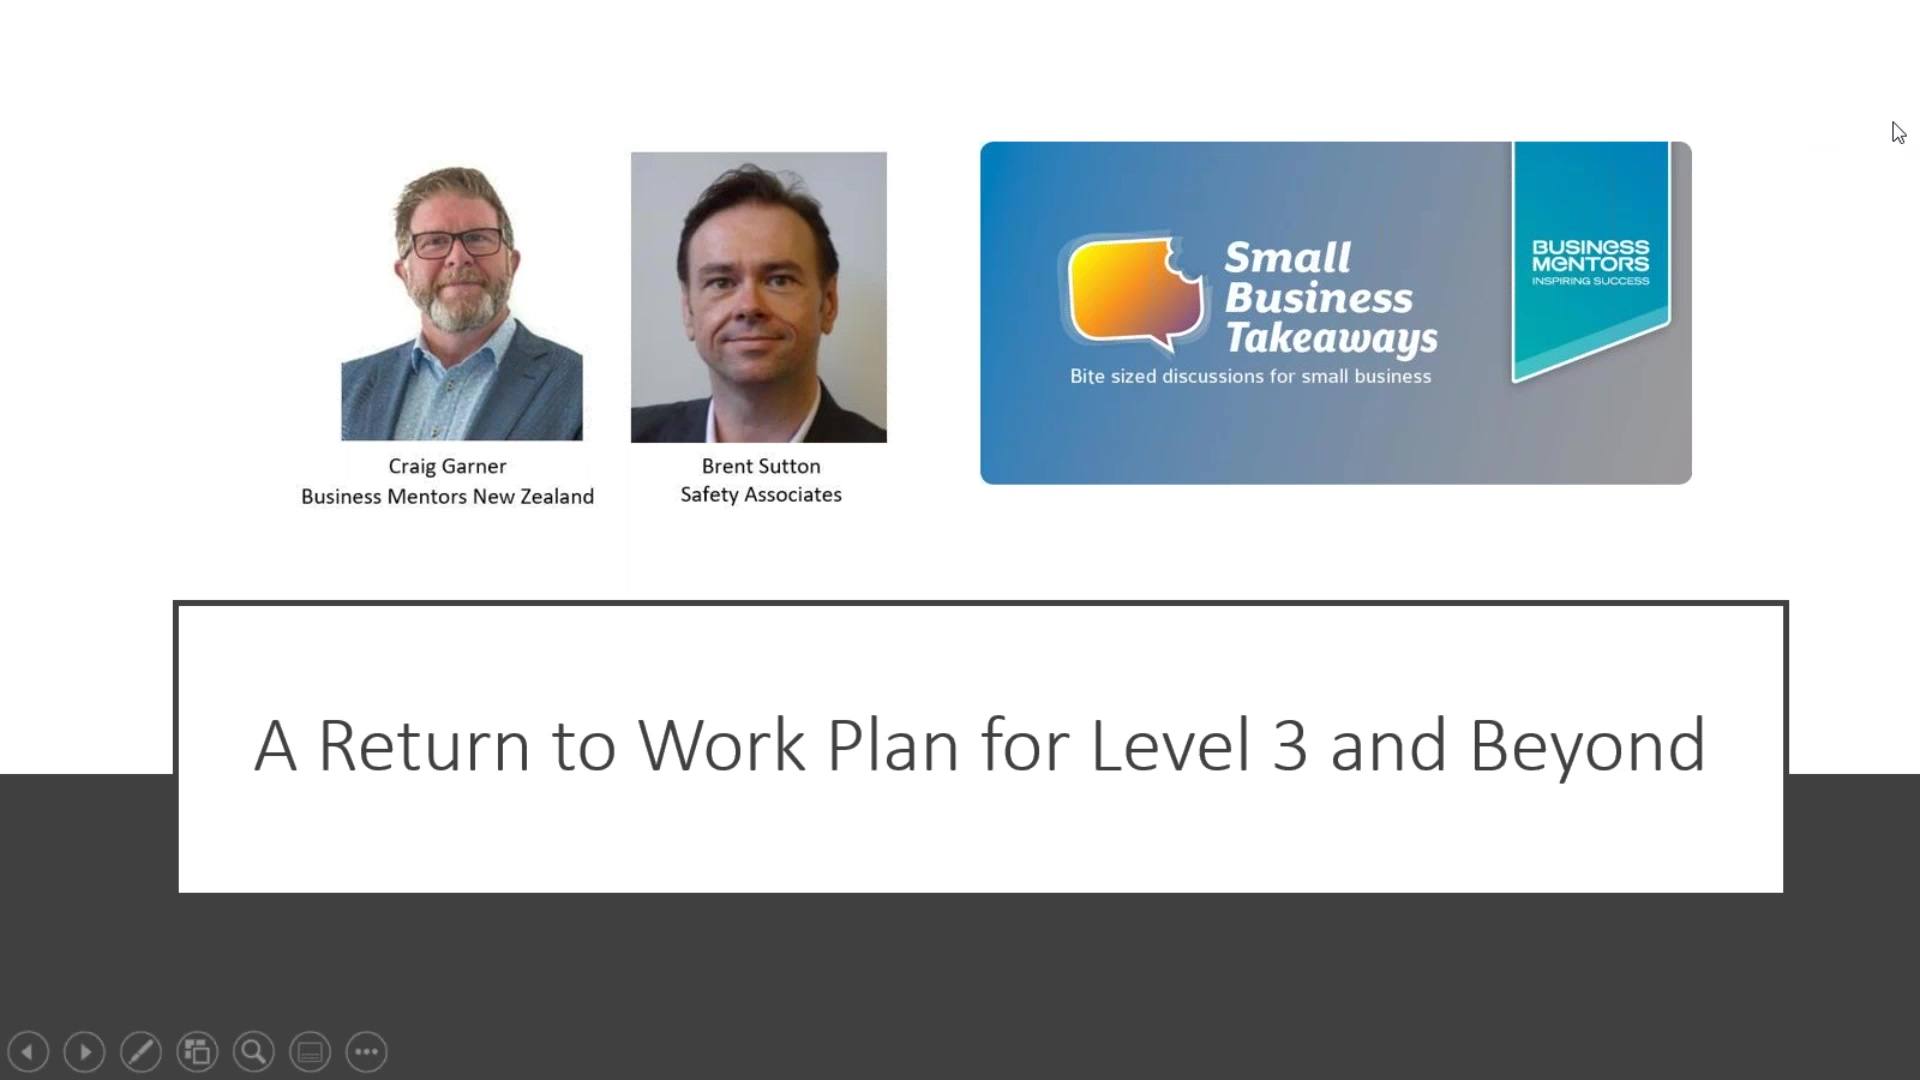 BMNZ SBT Your Return to Work Plan for Level 3 and Beyond